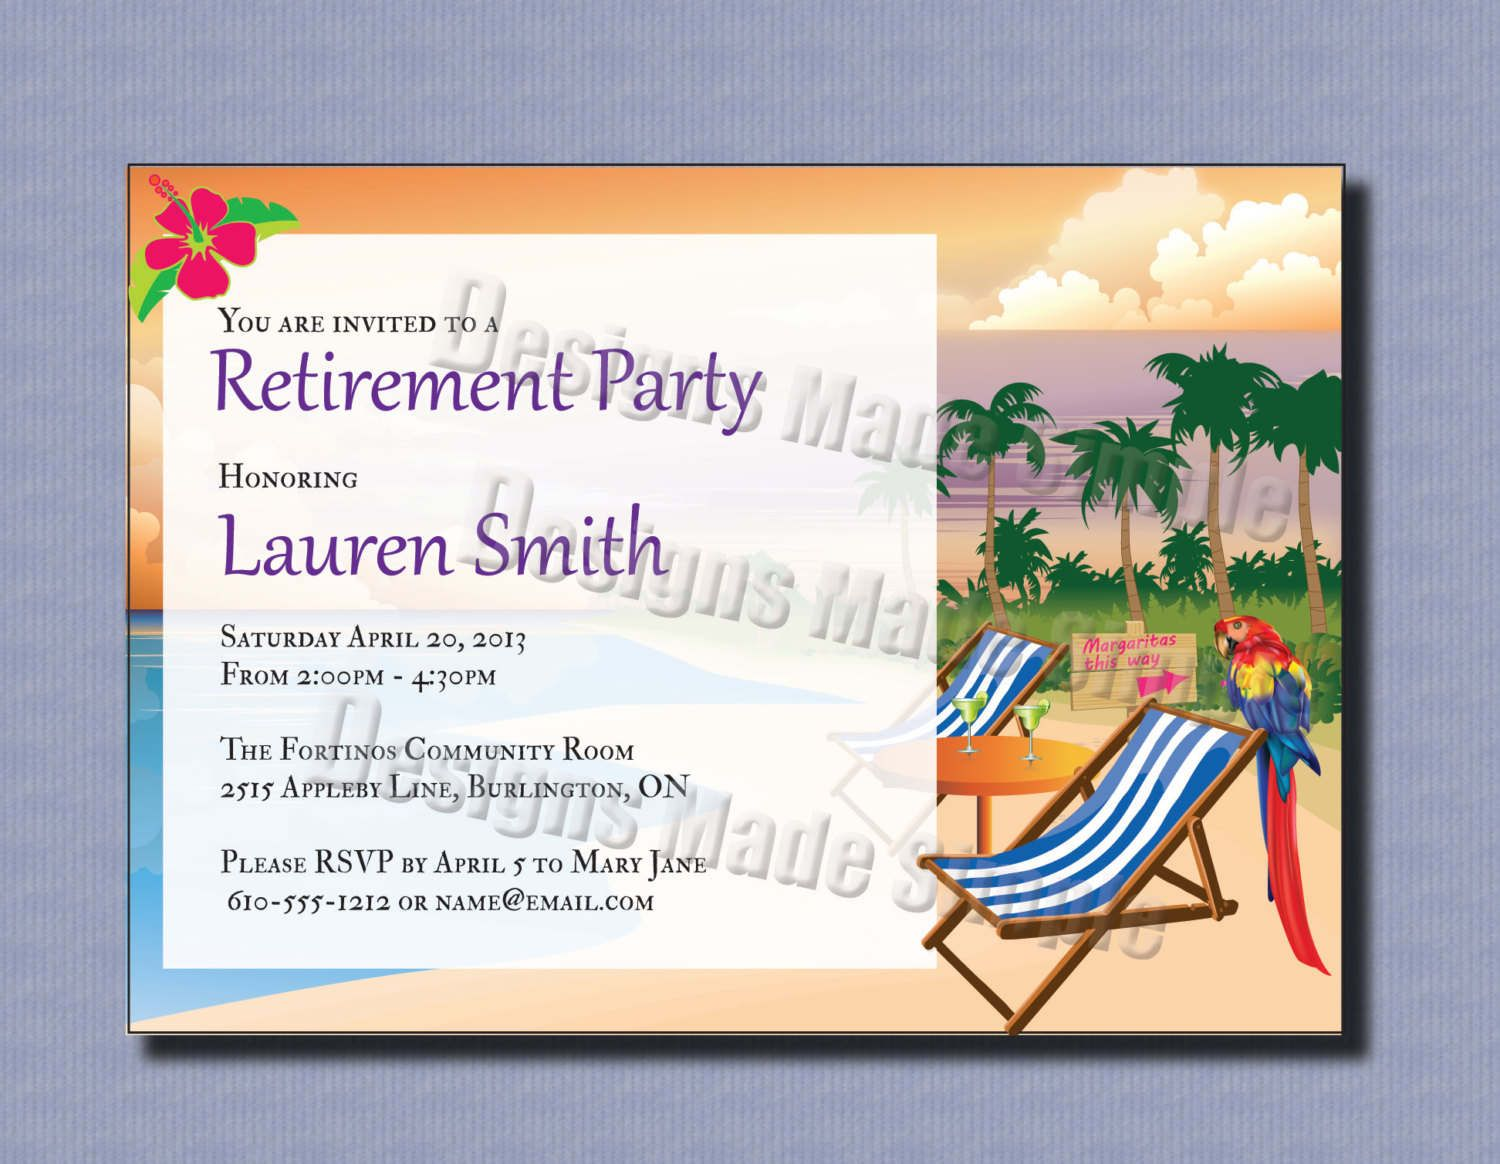 Free Printable Retirement Party Invitations Templates | wish list ...